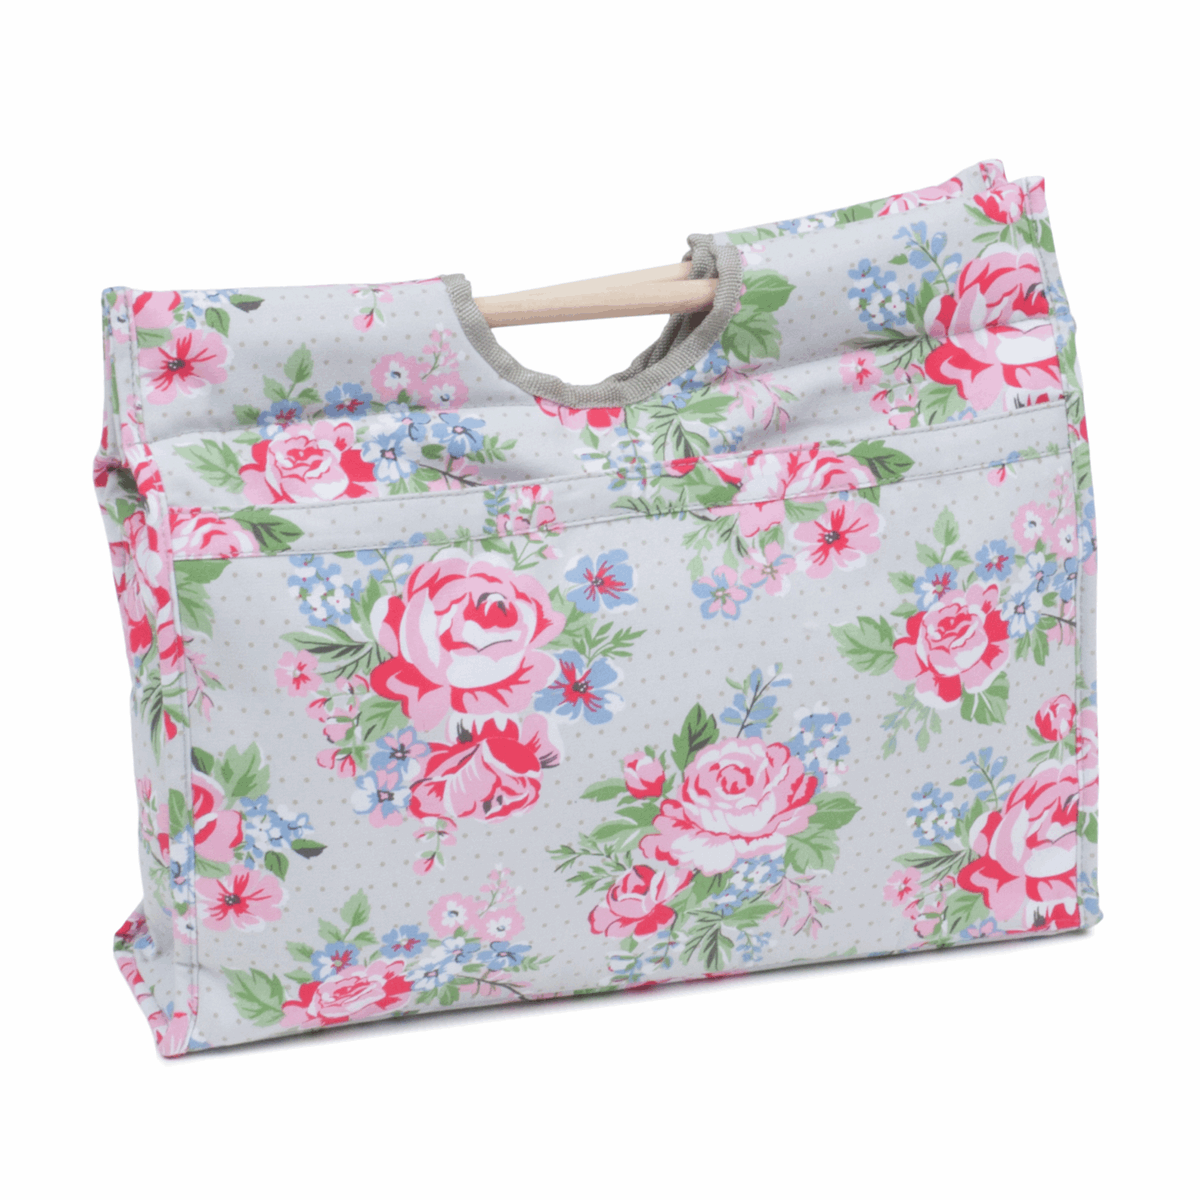 Picture of Craft Bag with Wooden Handles: Rose